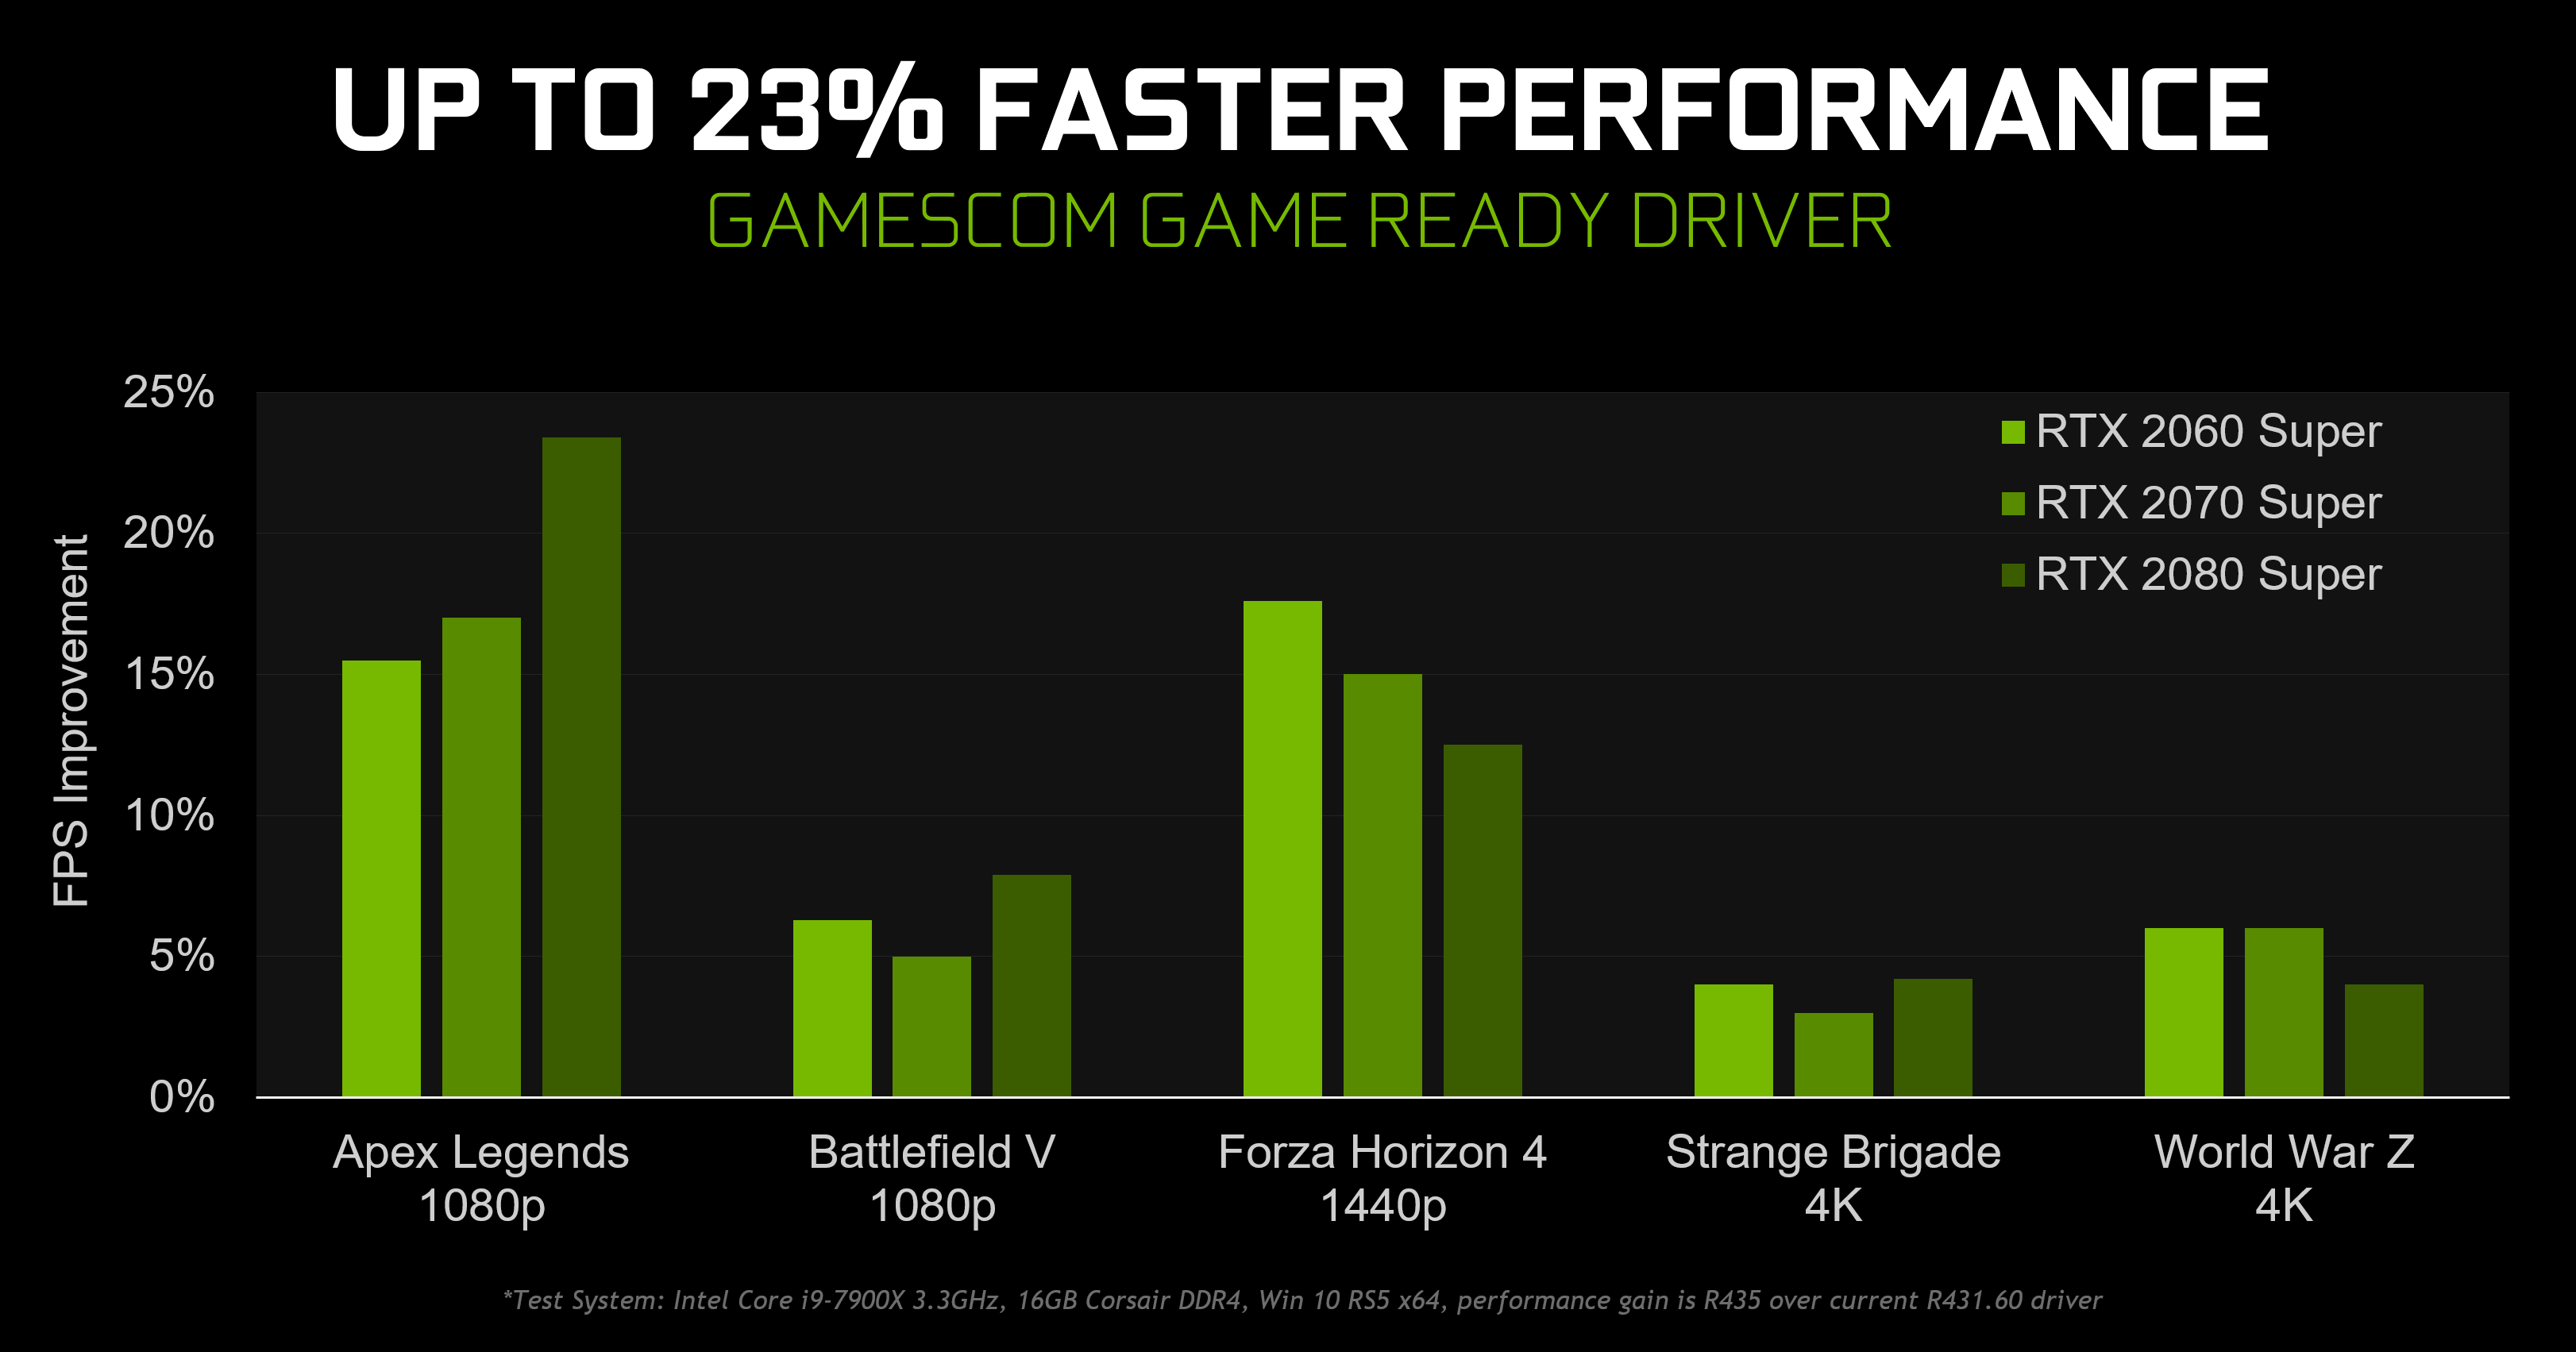 NVIDIA offers up to 23% more performance with its new